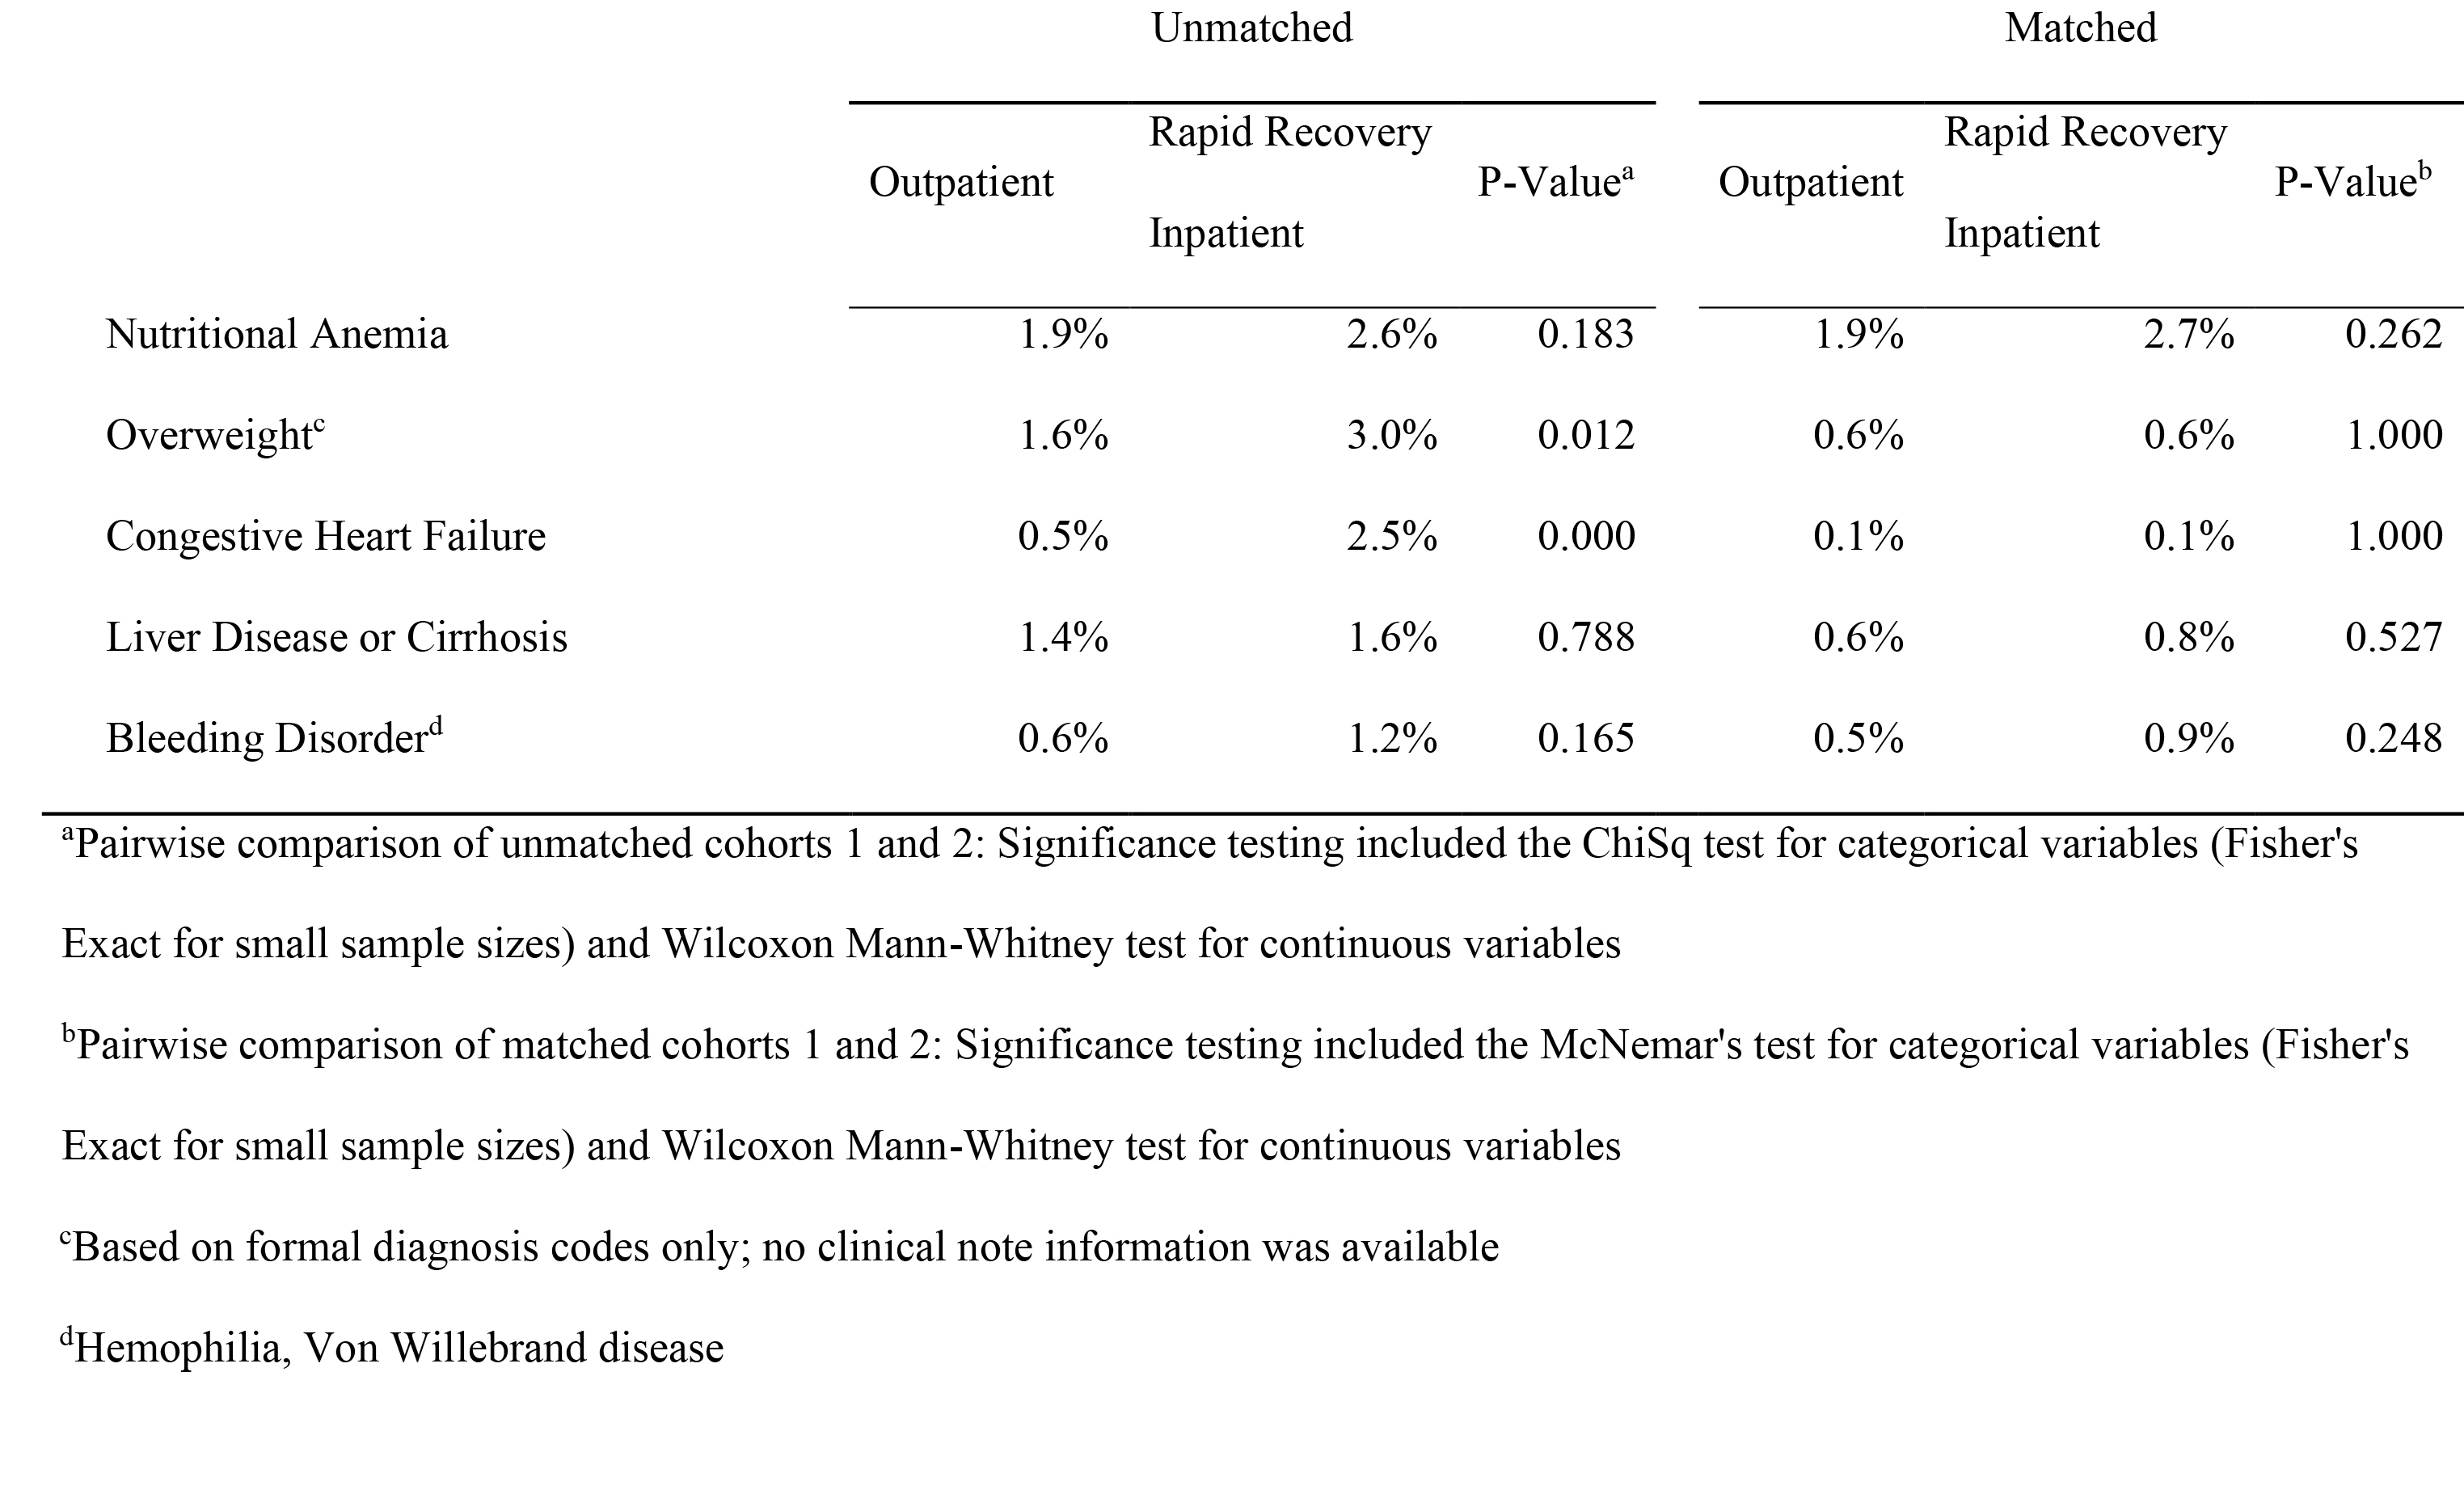 Patient demographics and clinical characteristics